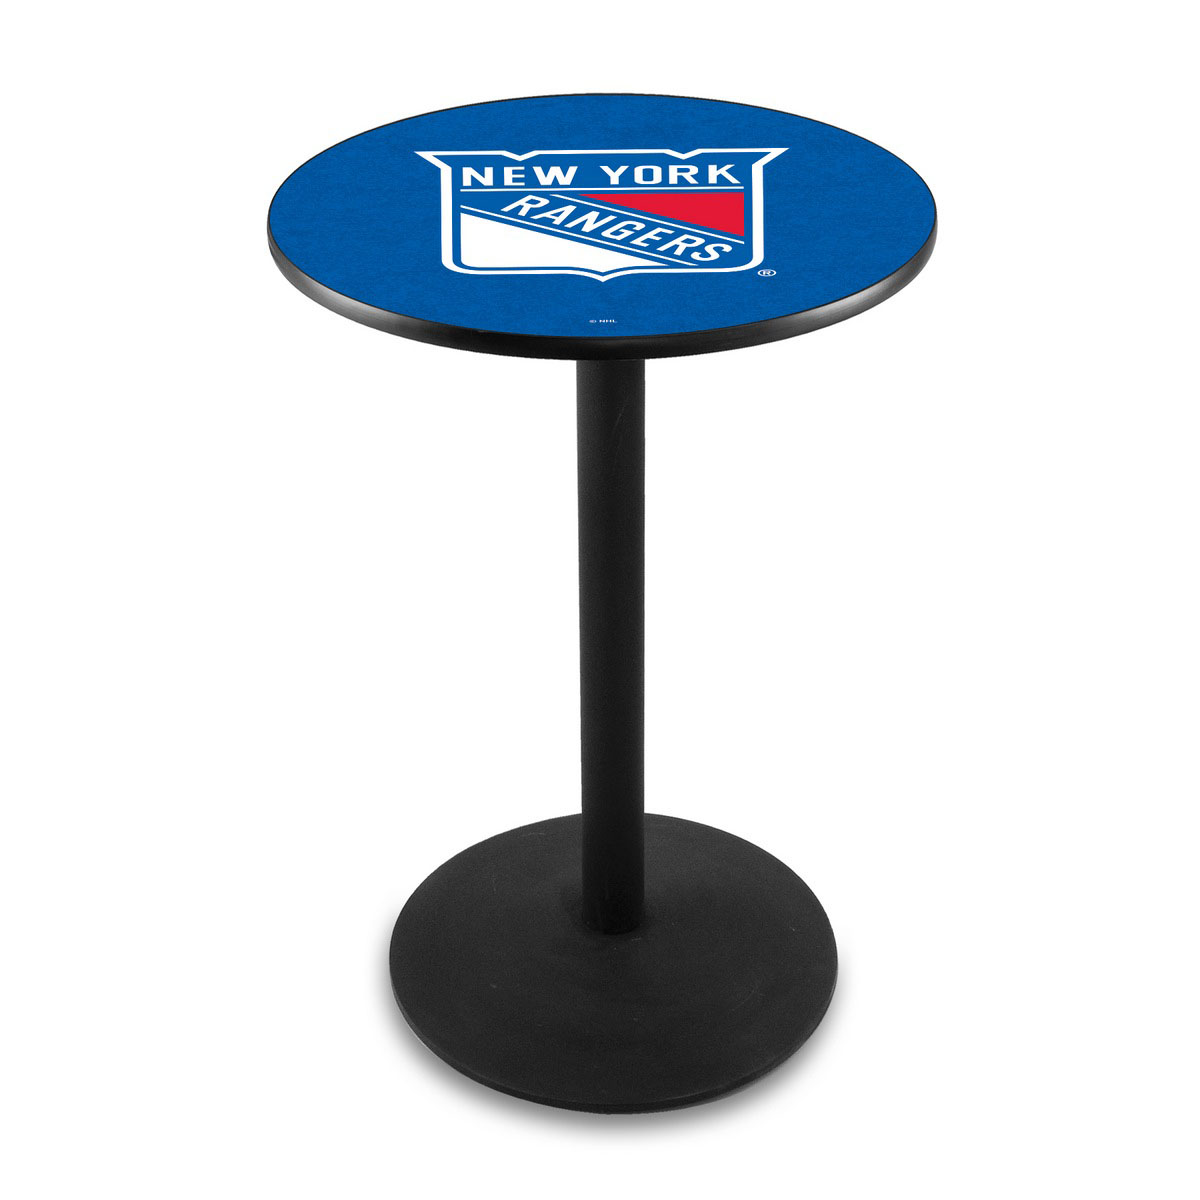 Exquisite New York Rangers Logo Pub Bar Table Round Stand Product Photo